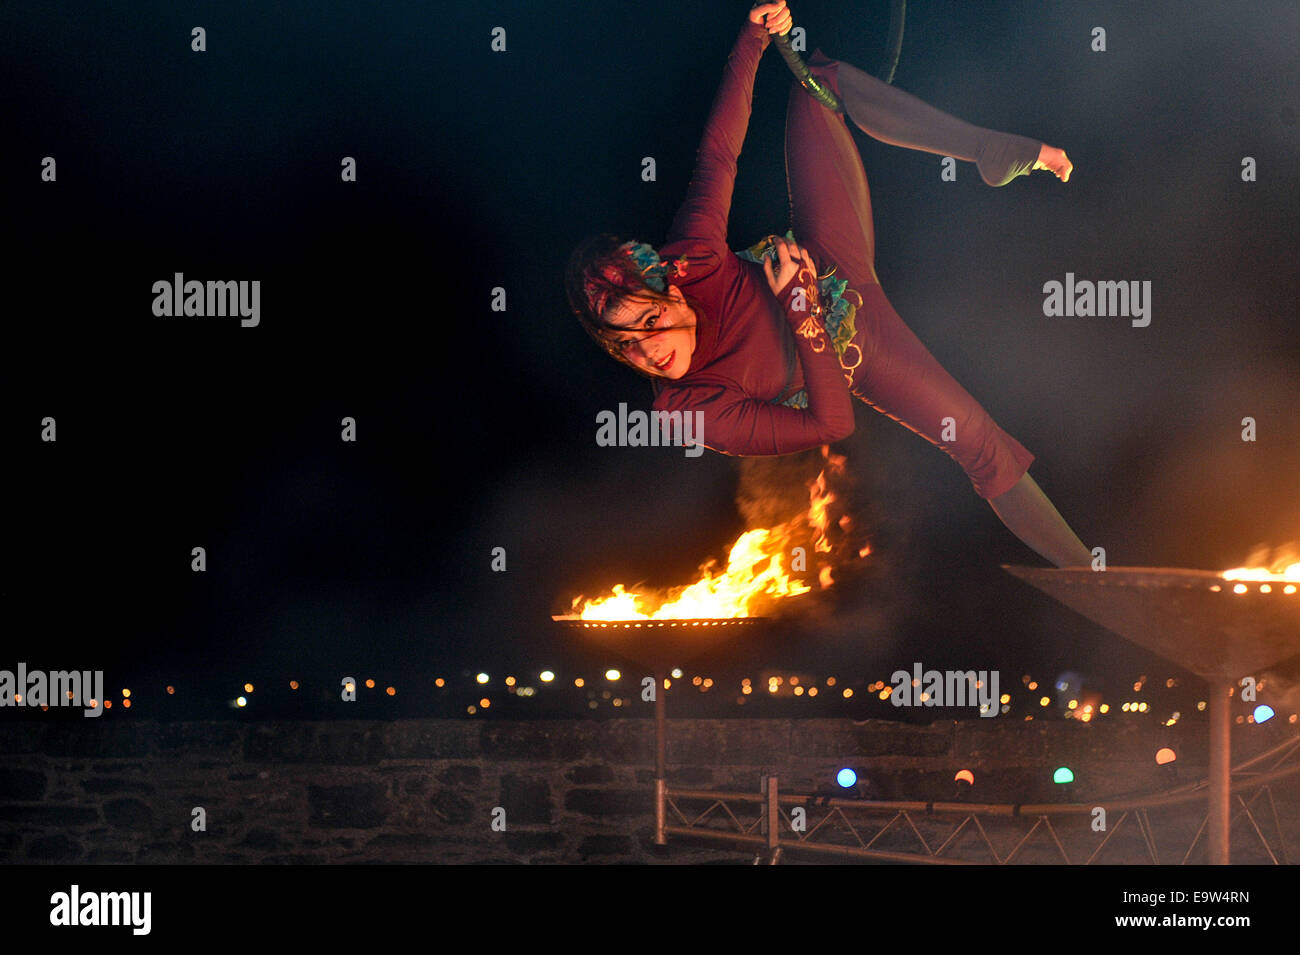 Stock Photo - Outdoor circus performer. ©George Sweeney/Alamy - Stock Image